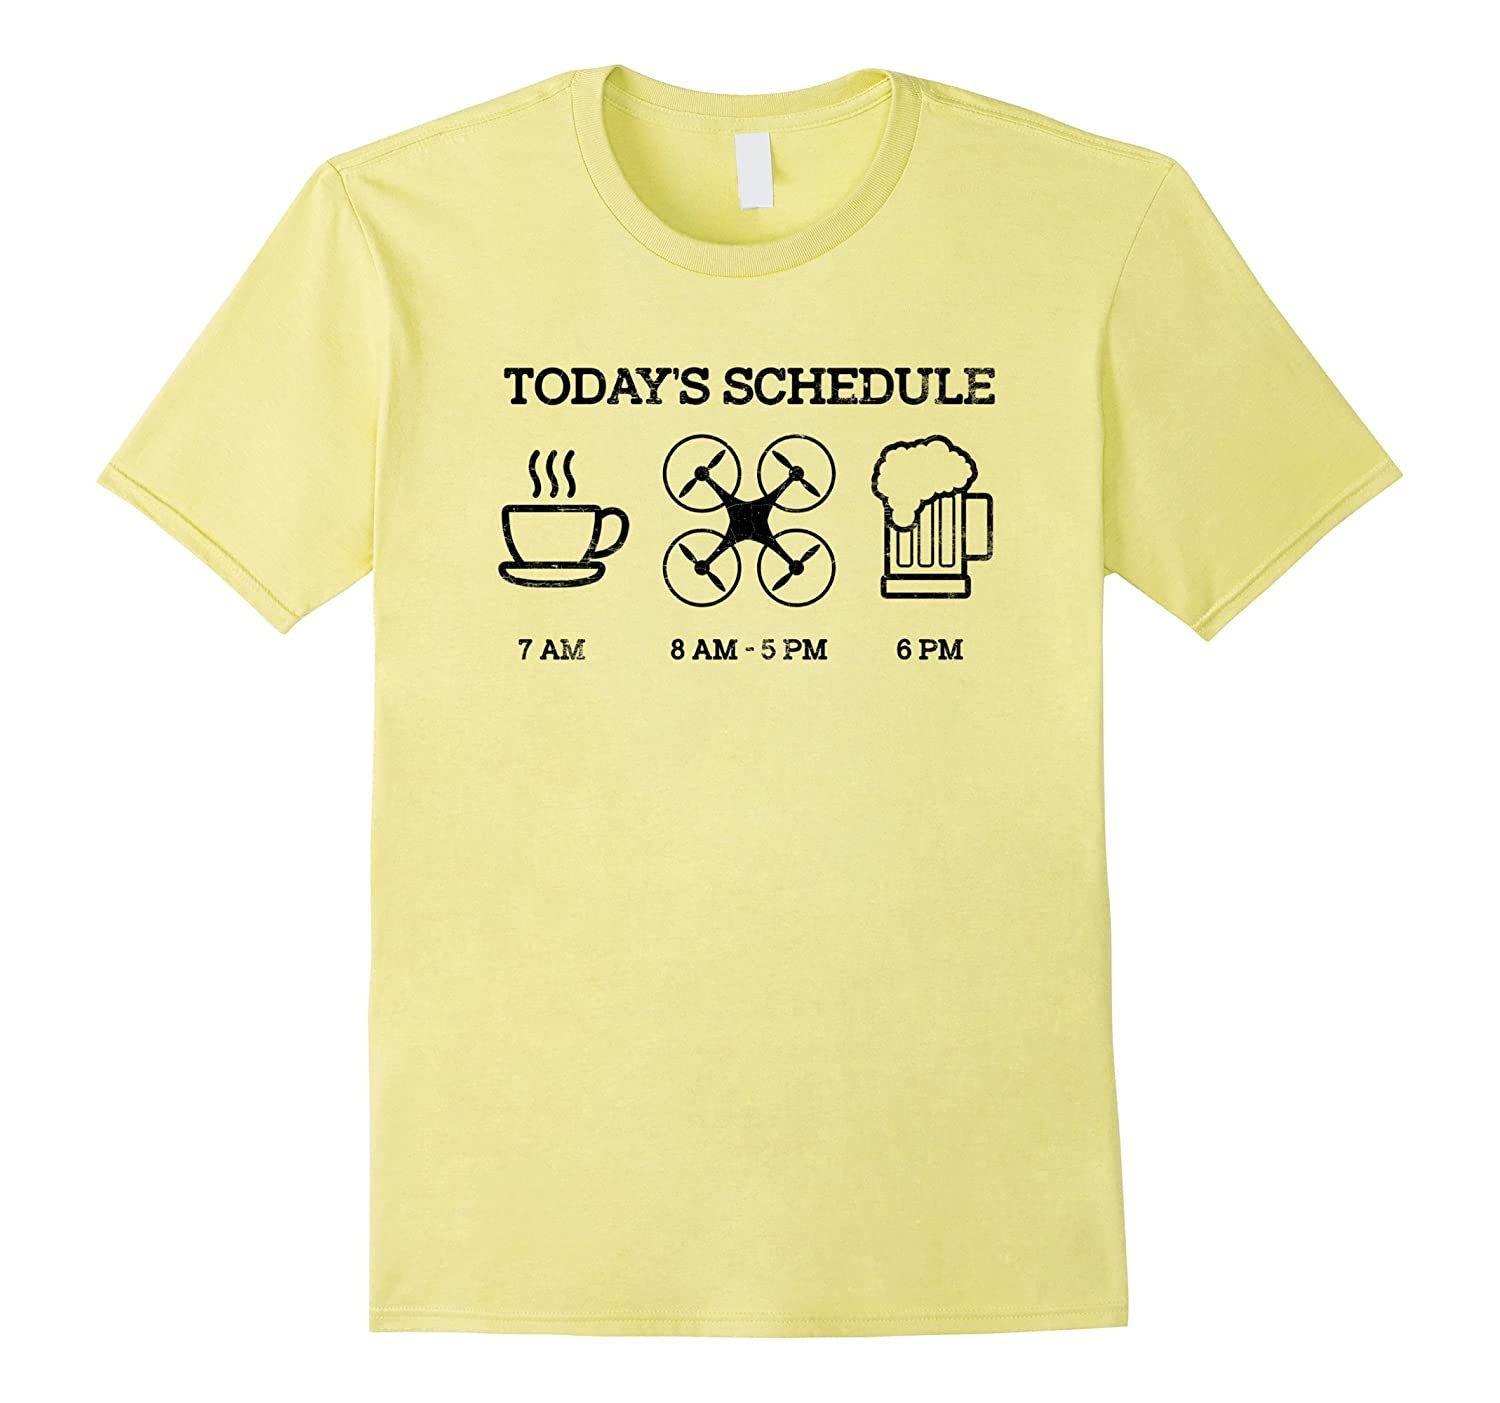 4b247d8b Quadcopter Drone Flying Funny T Shirt - Today's Schedule-FL ...